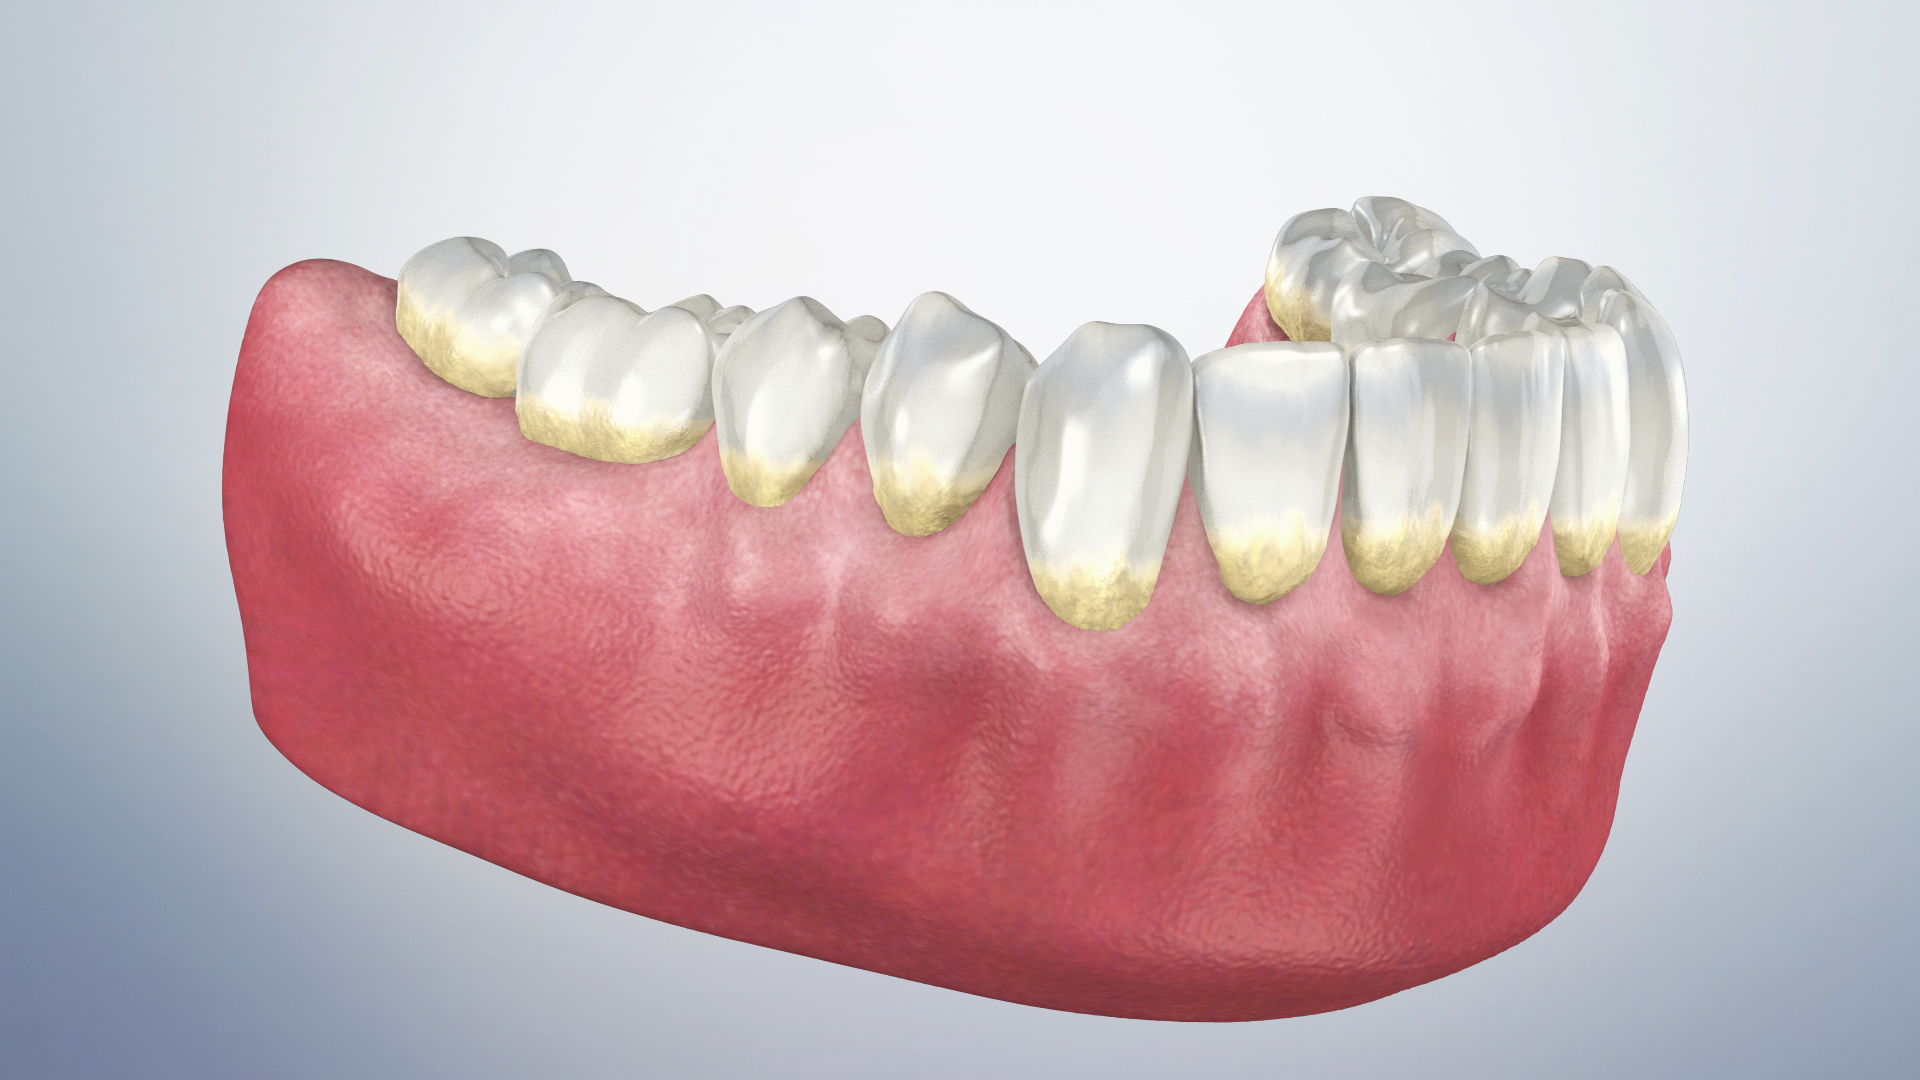 Thumbnail for a video on Periodontal Maintenance Therapy